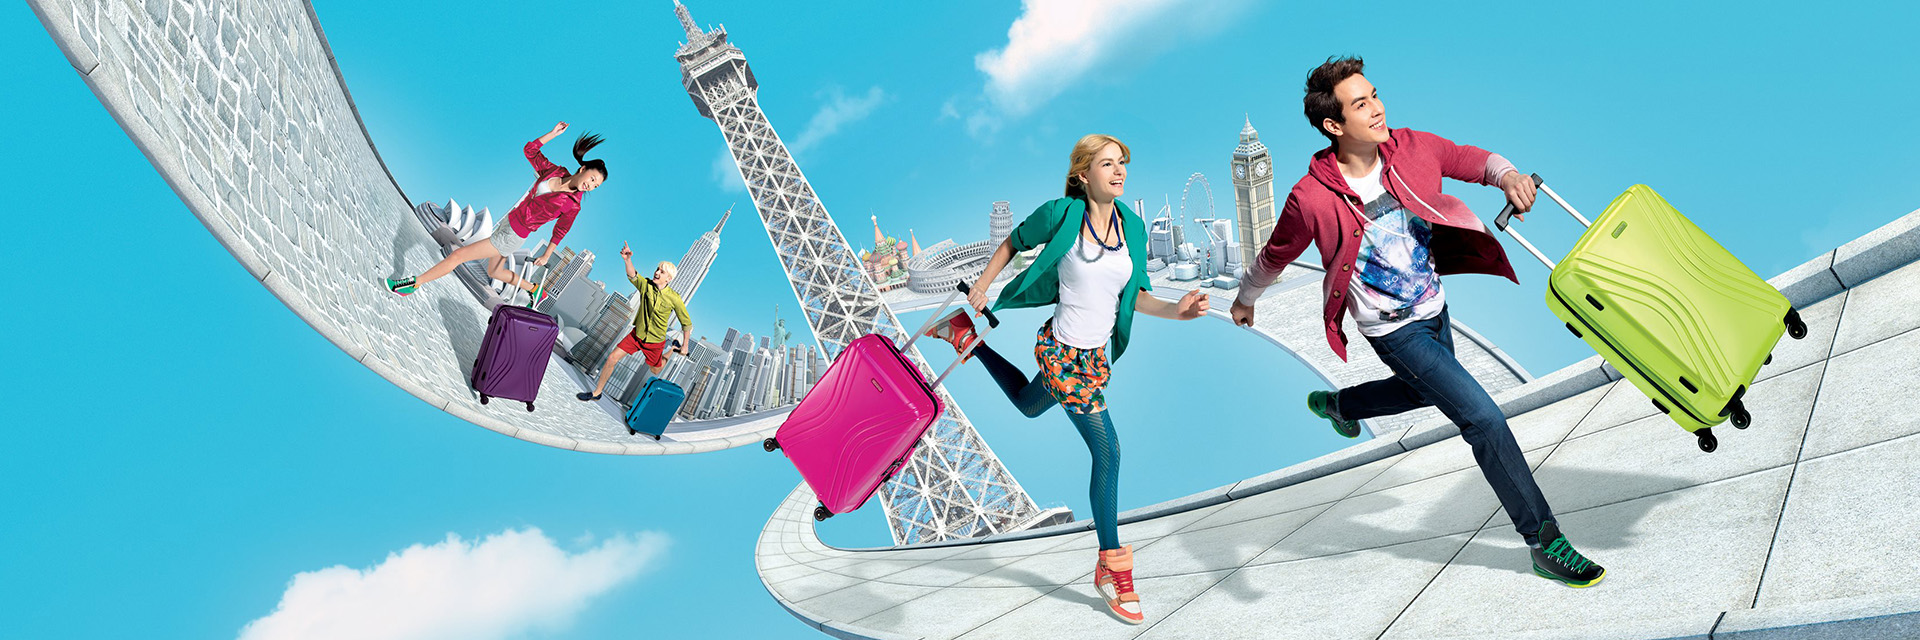 1920x640_american tourister banner-1920x640